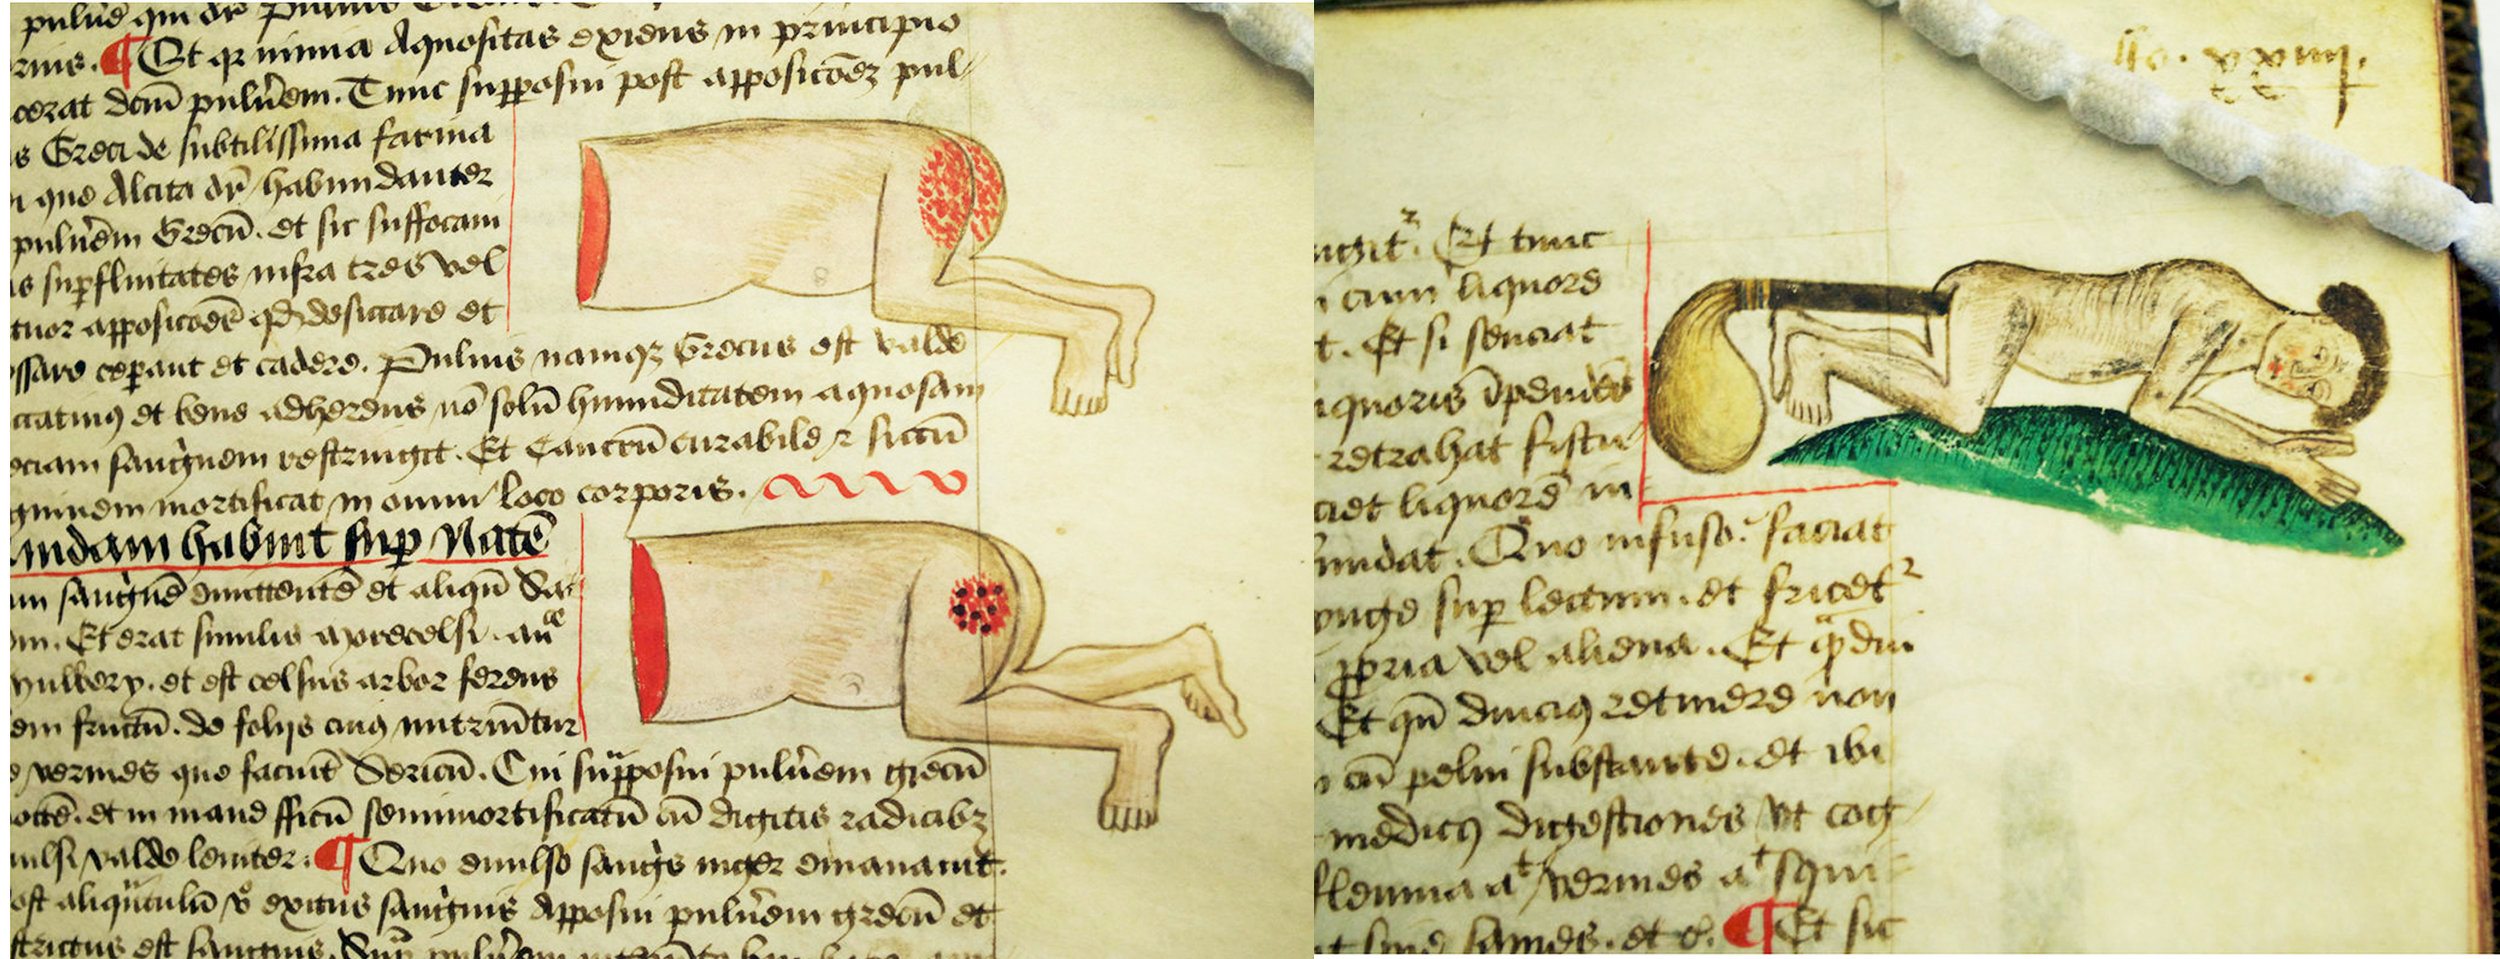 blog medical marginalia1.jpg